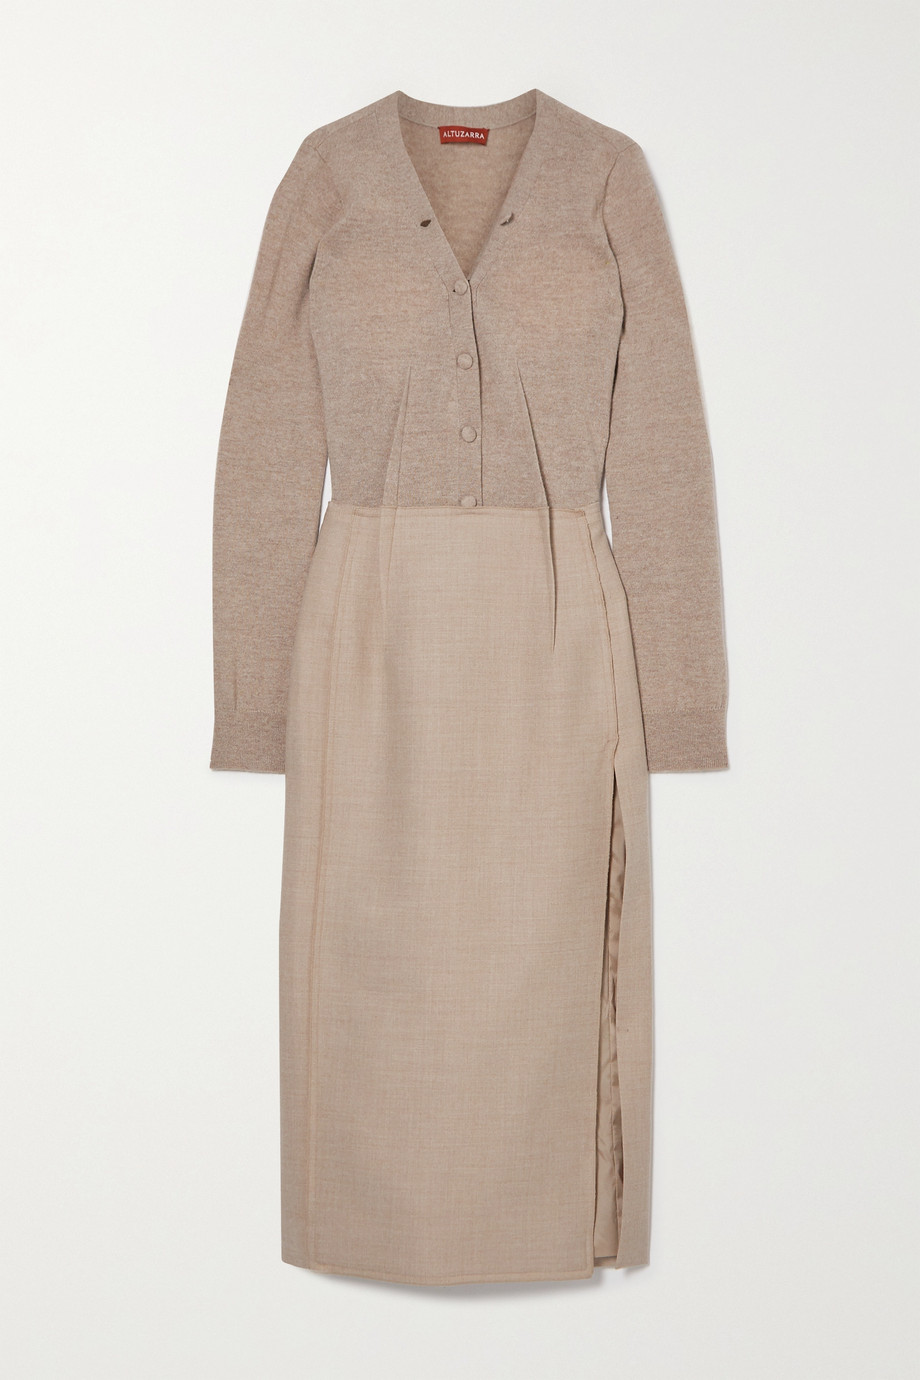 Altuzarra Arlene mélange wool-blend midi dress